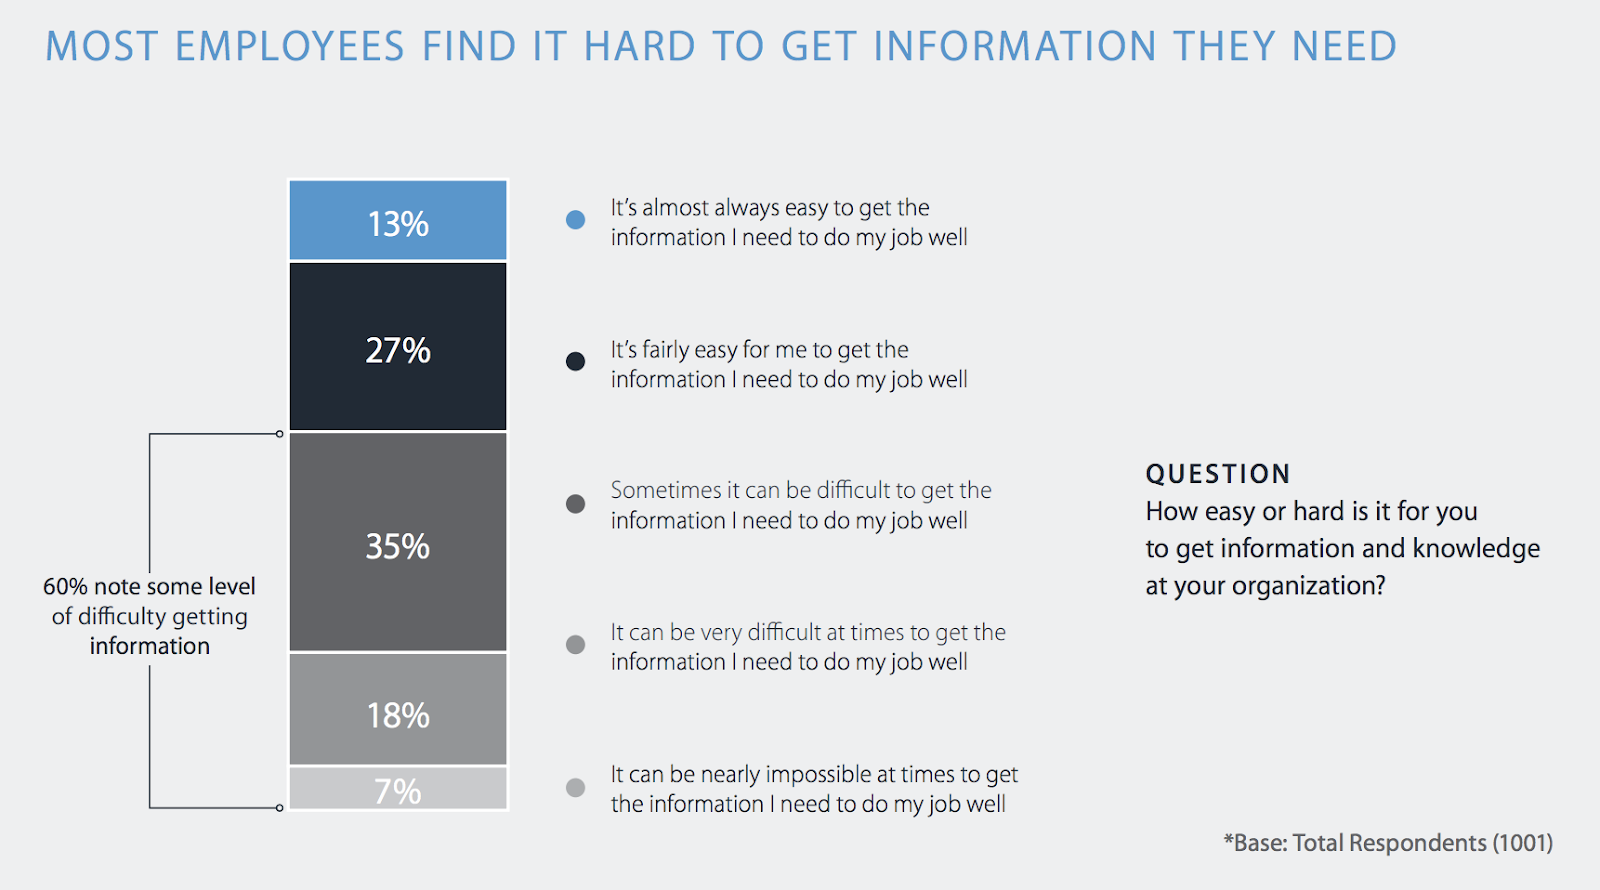 Most employees report difficulty in getting the information they need